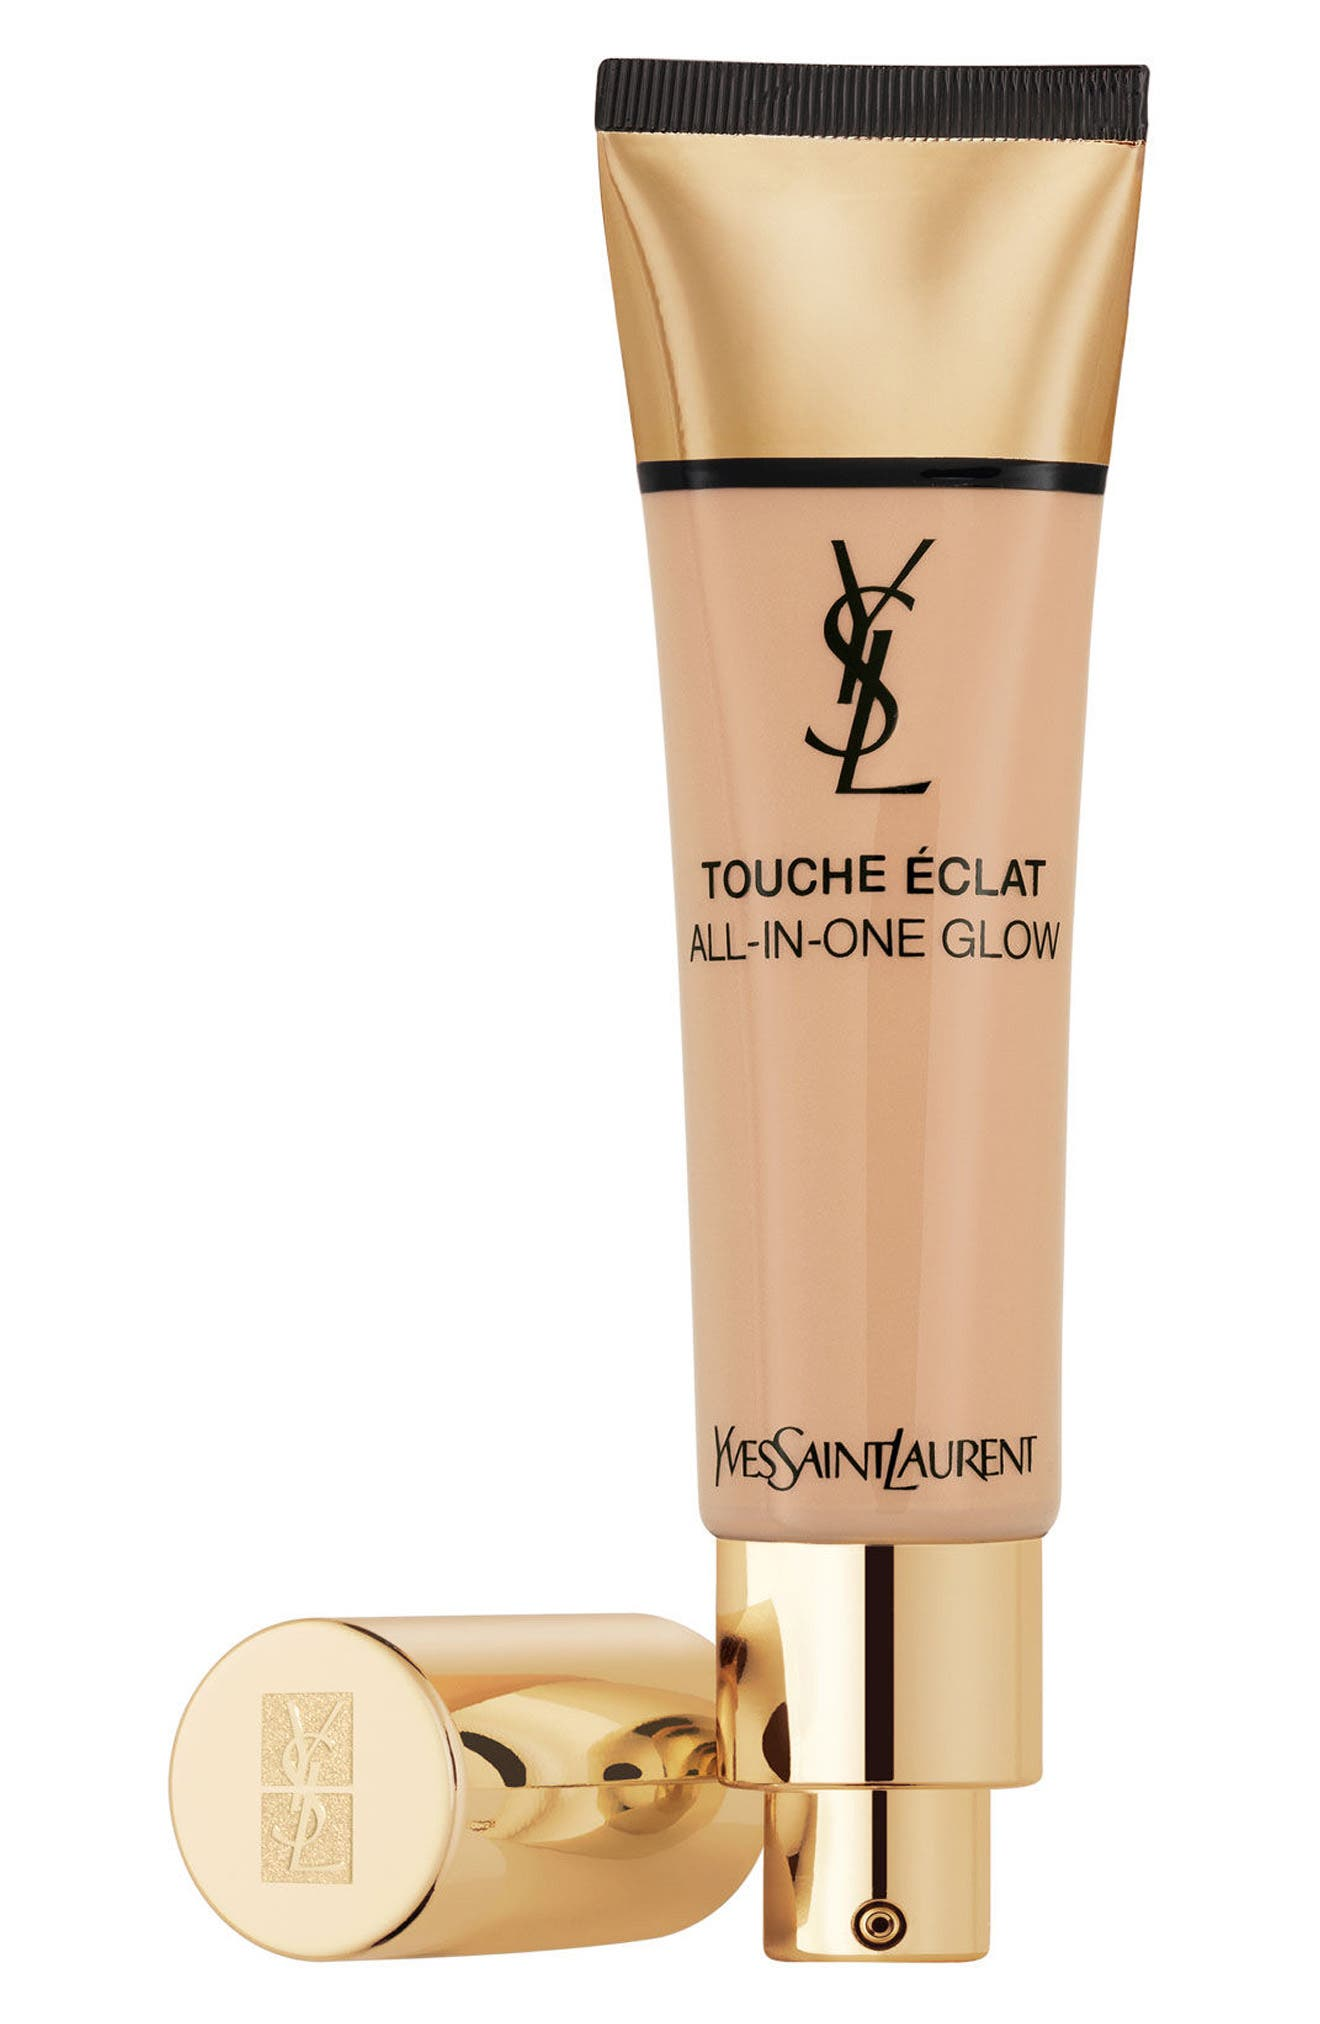 Yves Saint Laurent Touche Eclat All-in-One Glow